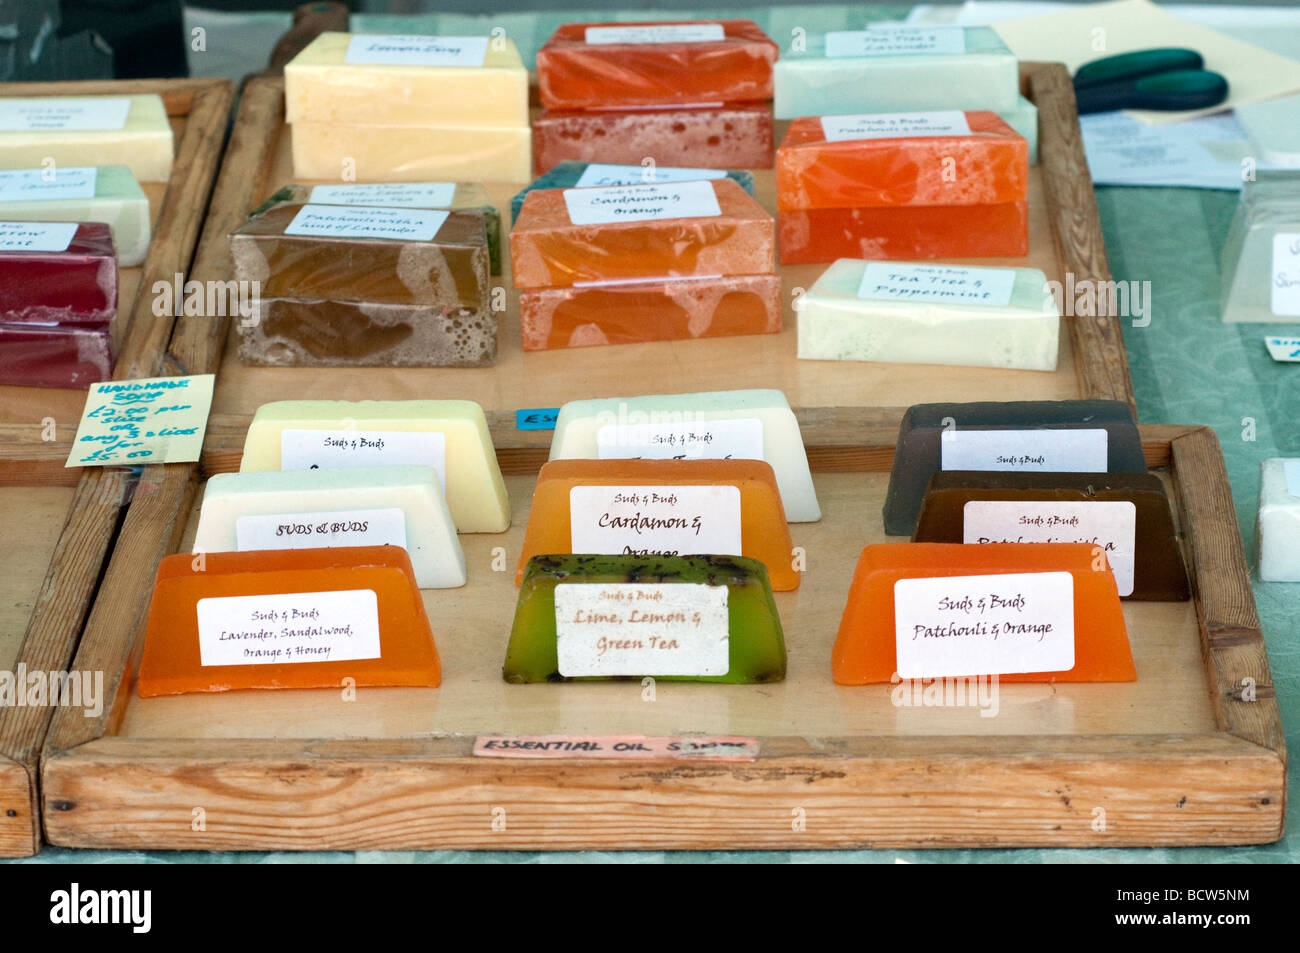 Blocks of 'vegetable glycerine' soaps on a market stall  tray - Stock Image